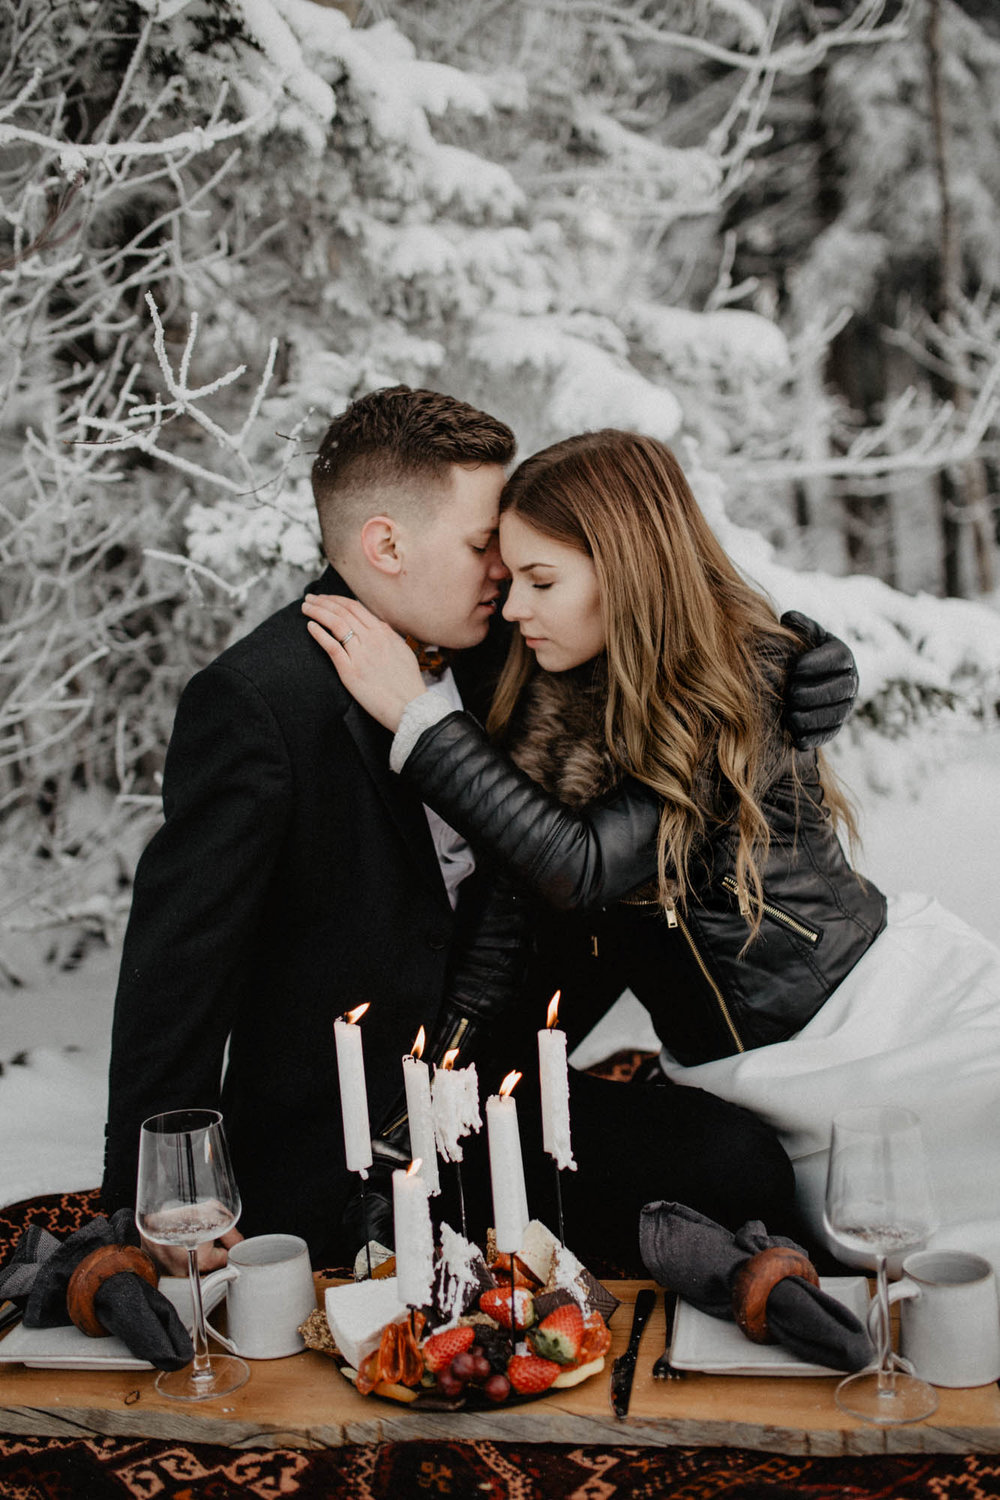 ashley_schulman_photography-winter_wedding_tampere-58.jpg